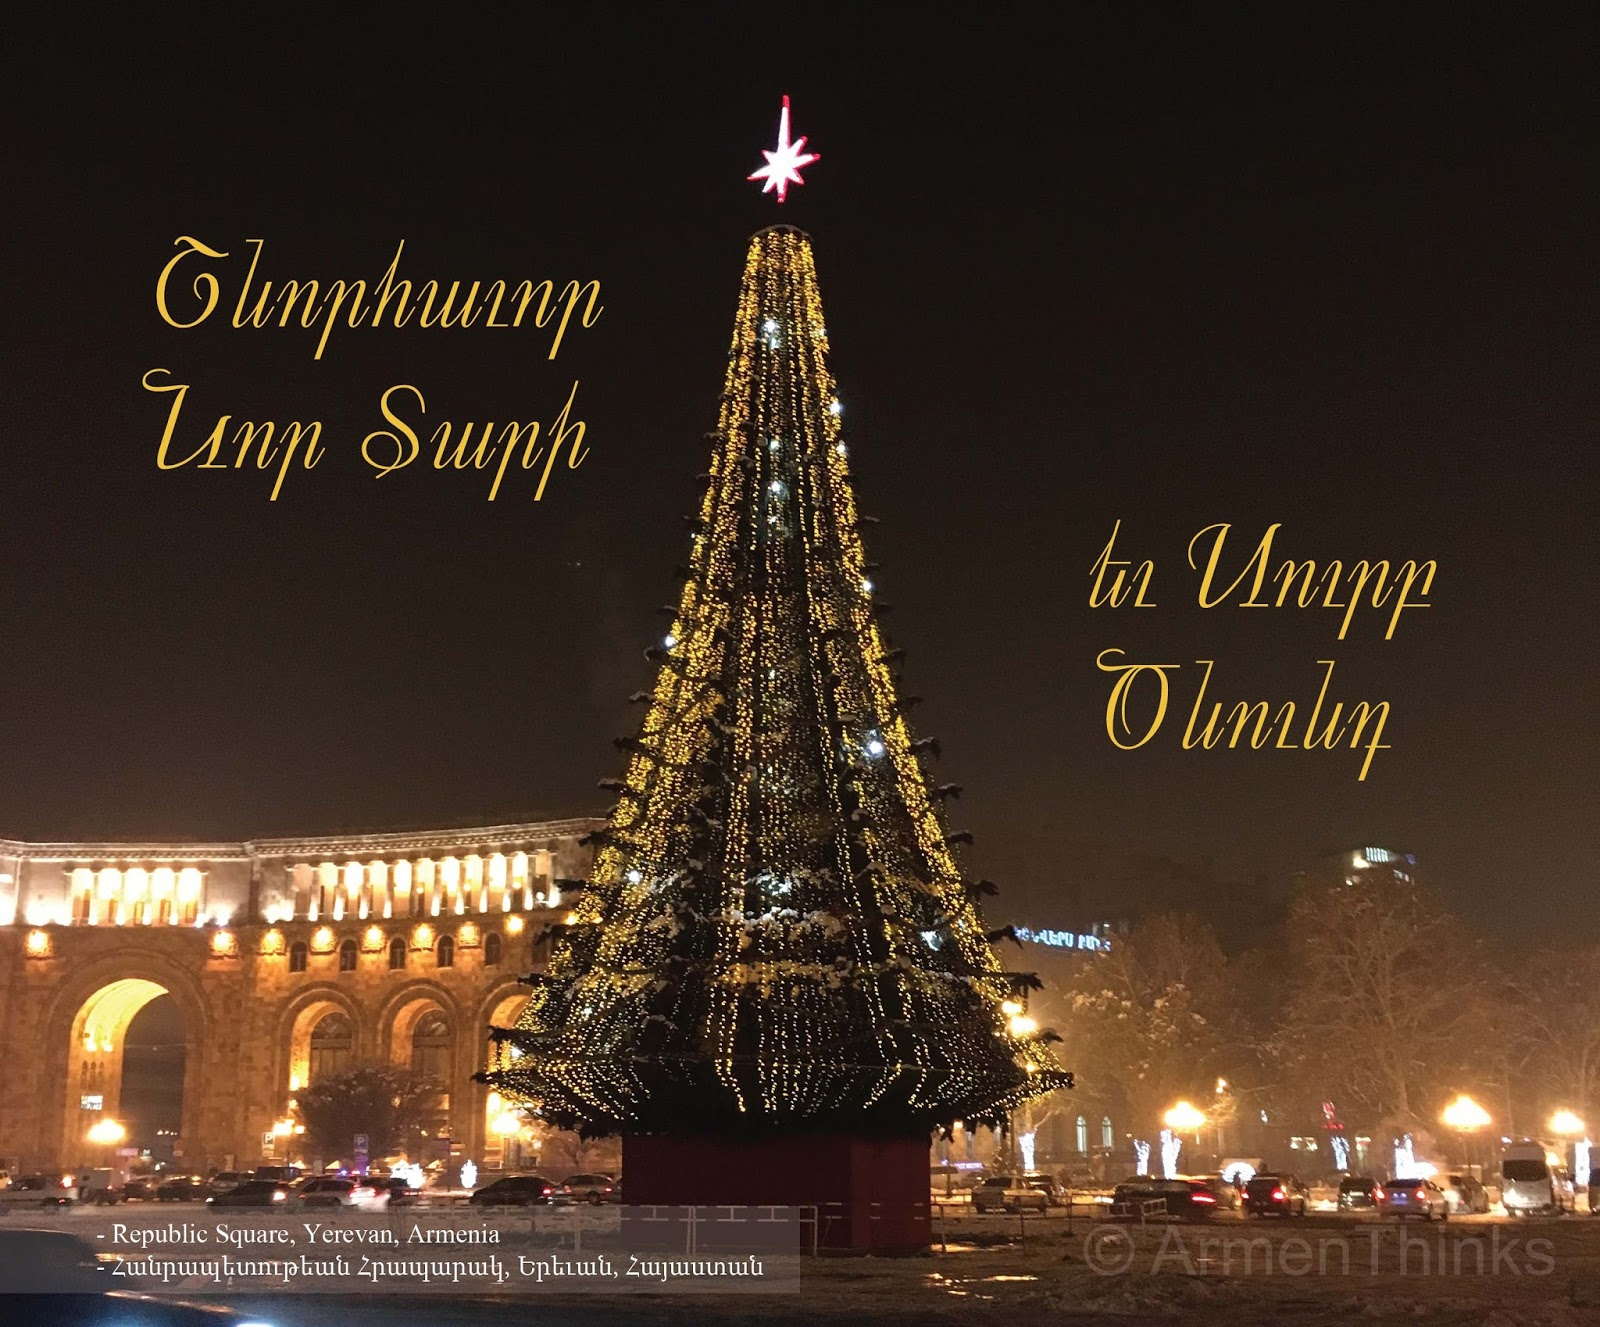 Armenian Christmas.Armenian Christmas How To Congratulate It Correctly